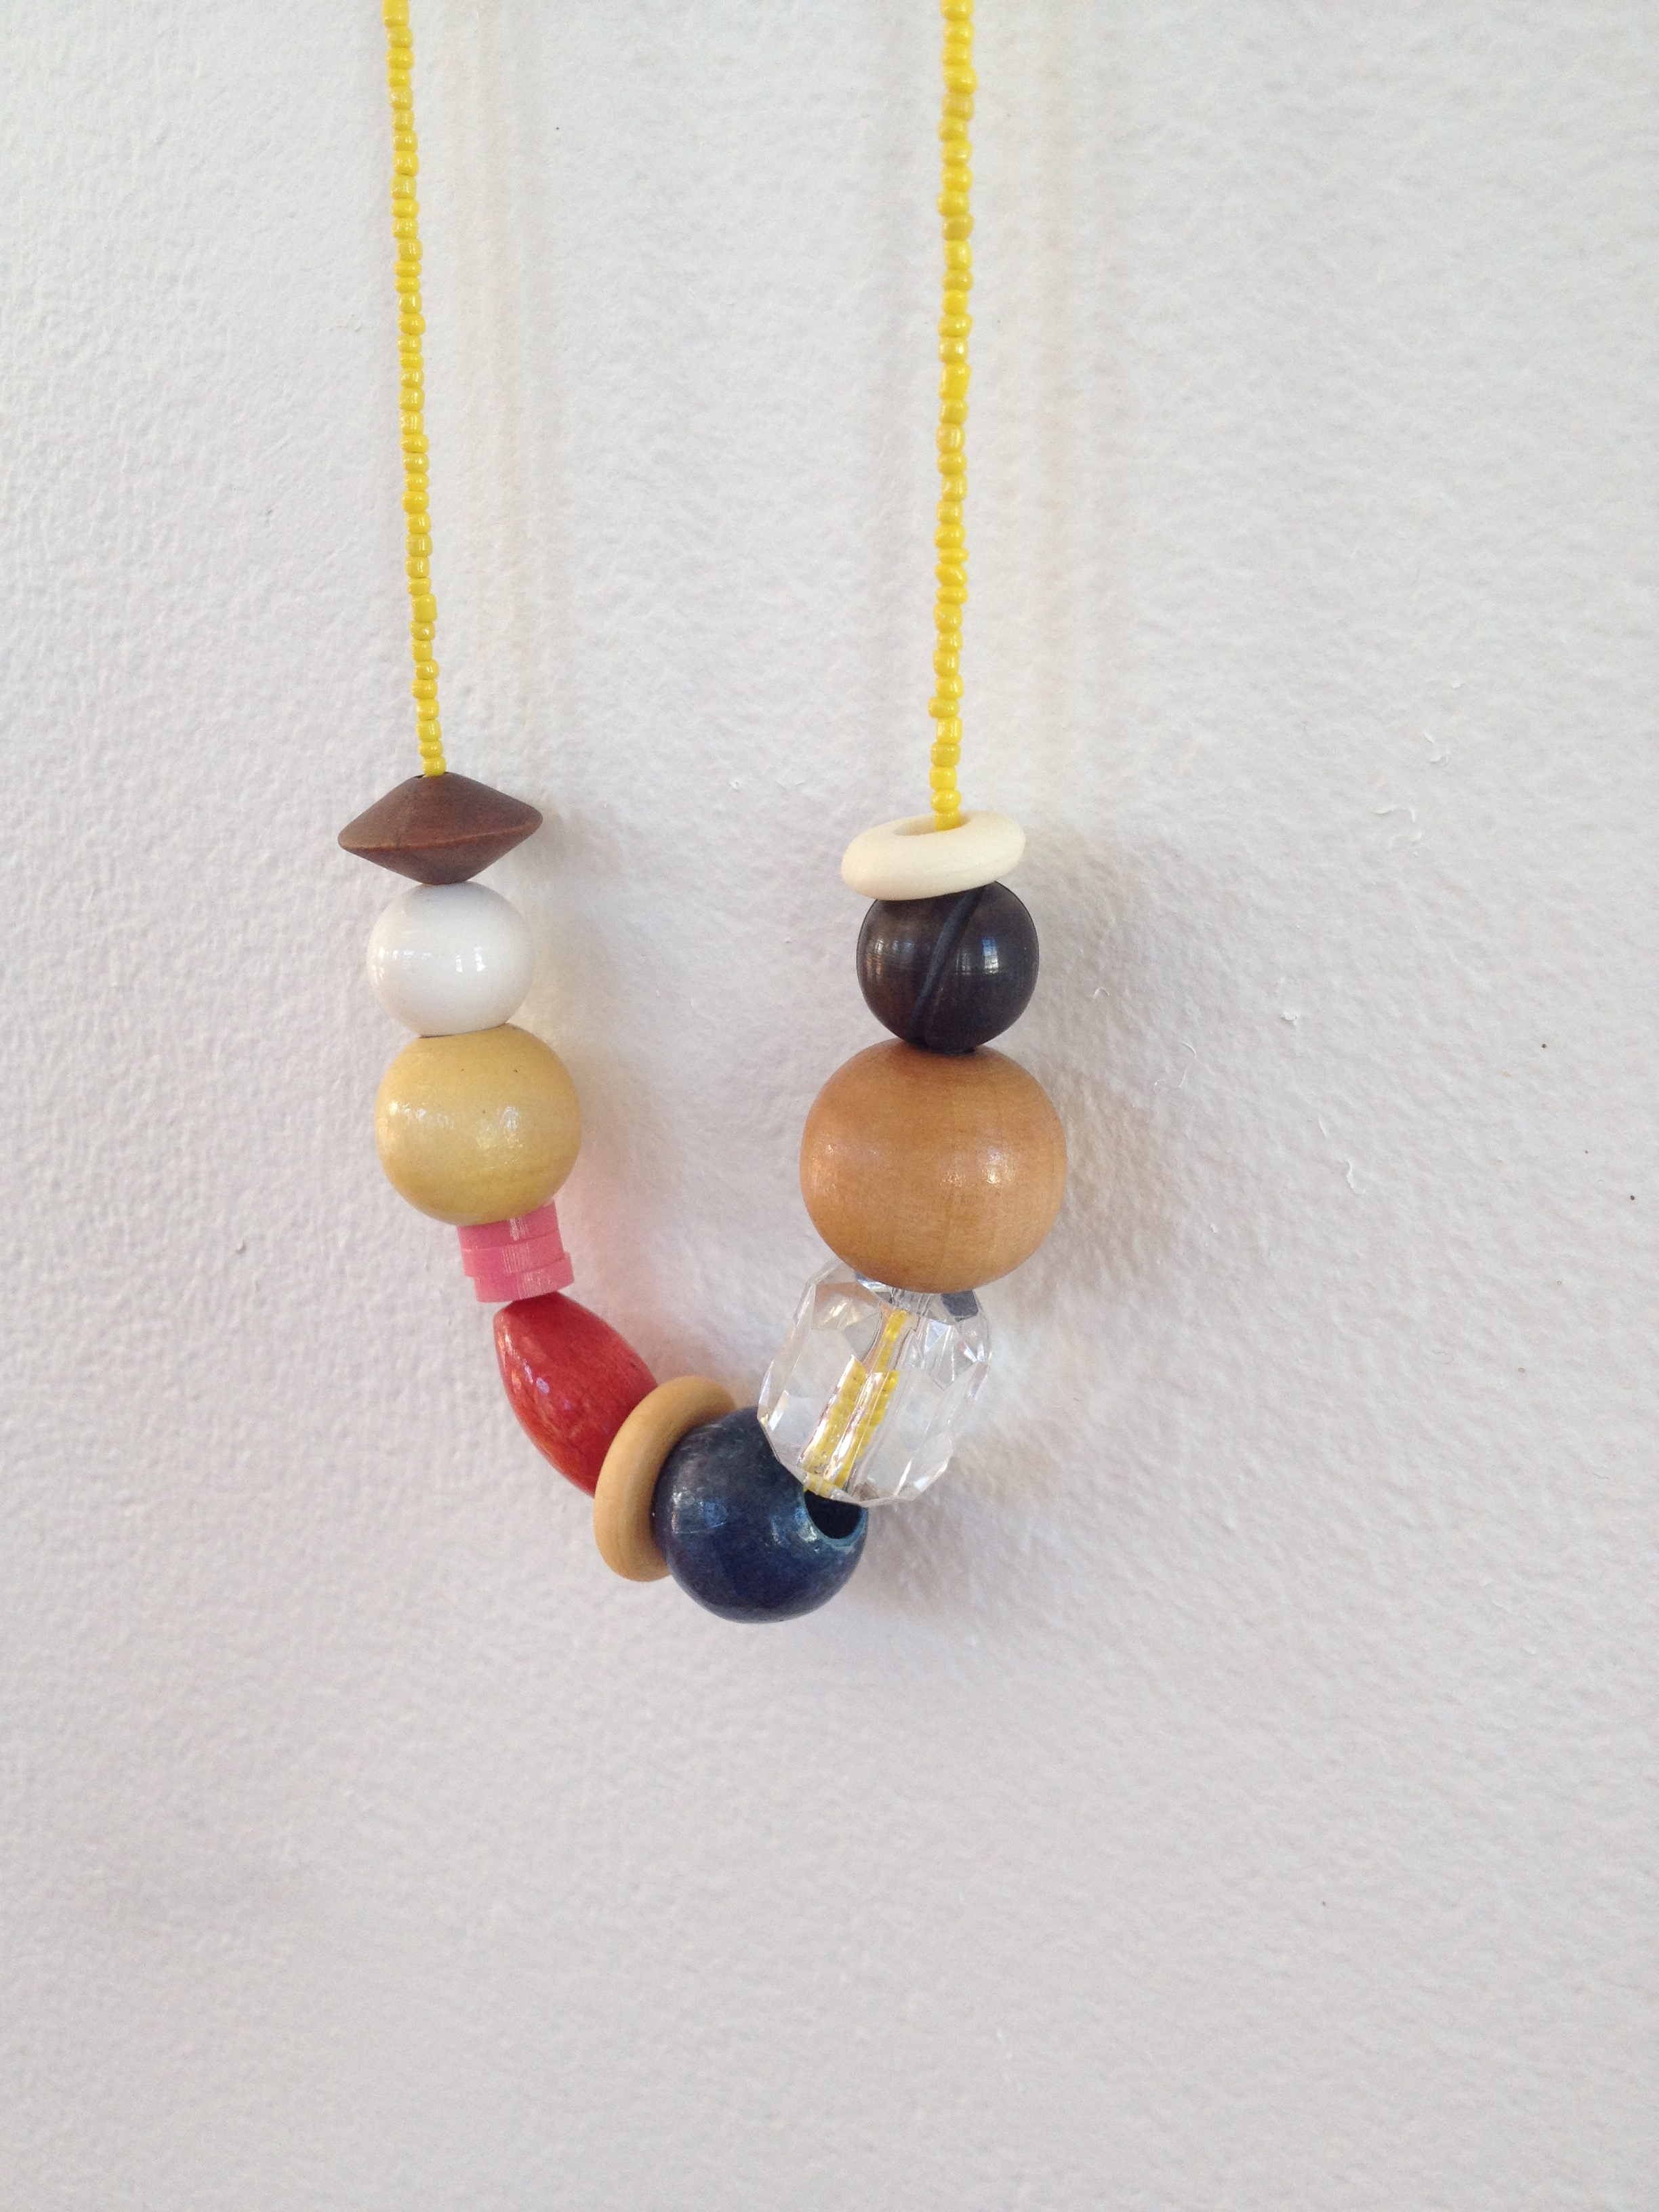 Bonbon_Necklace_21_detail_2.jpg